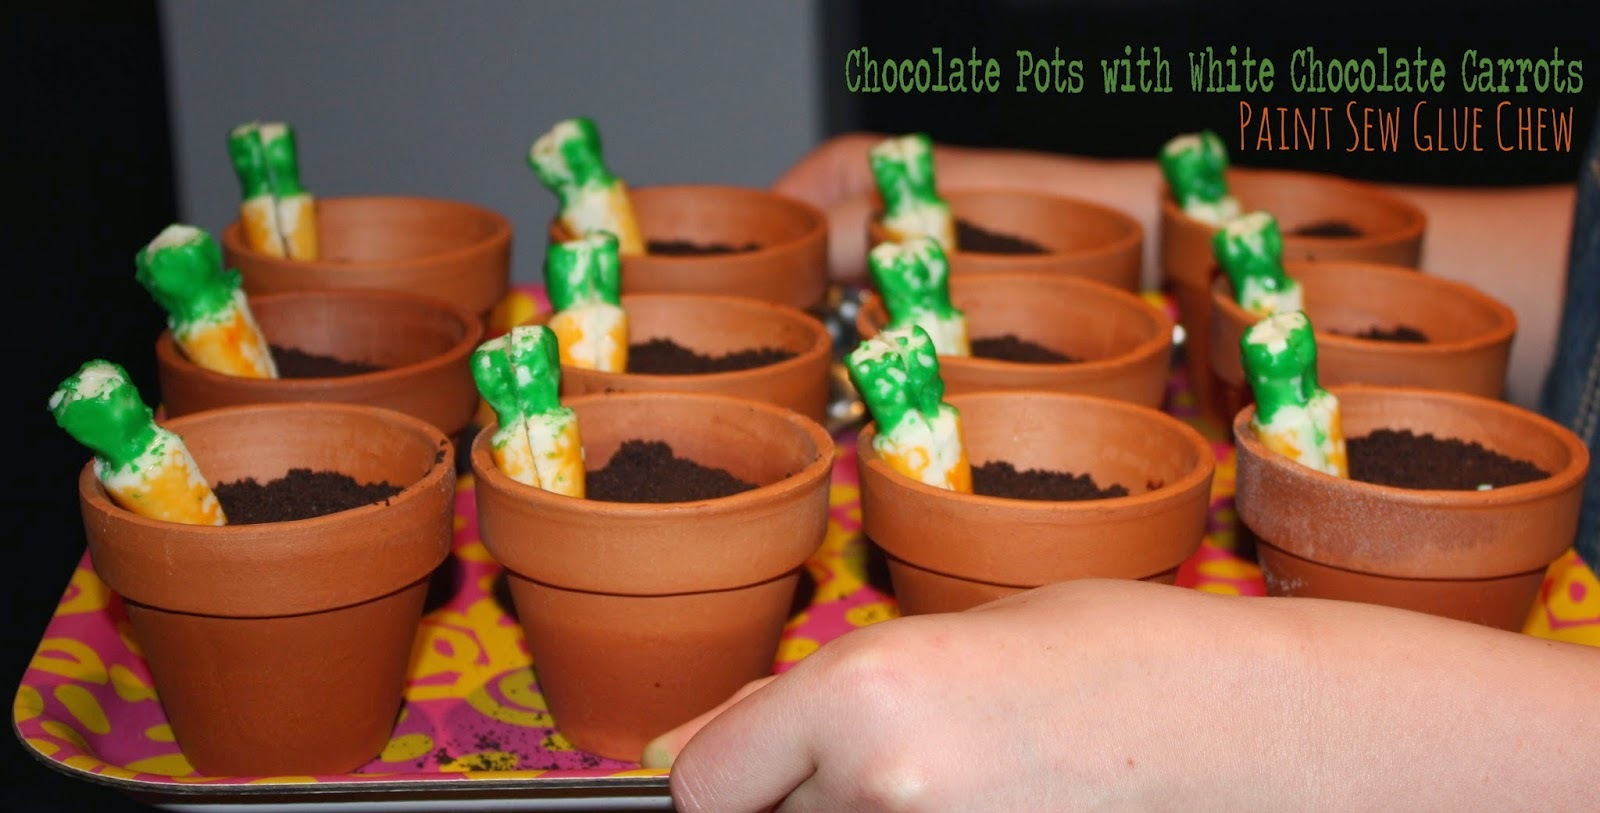 Chocolate Mousse Flower Pots with White Chocolate Carrots